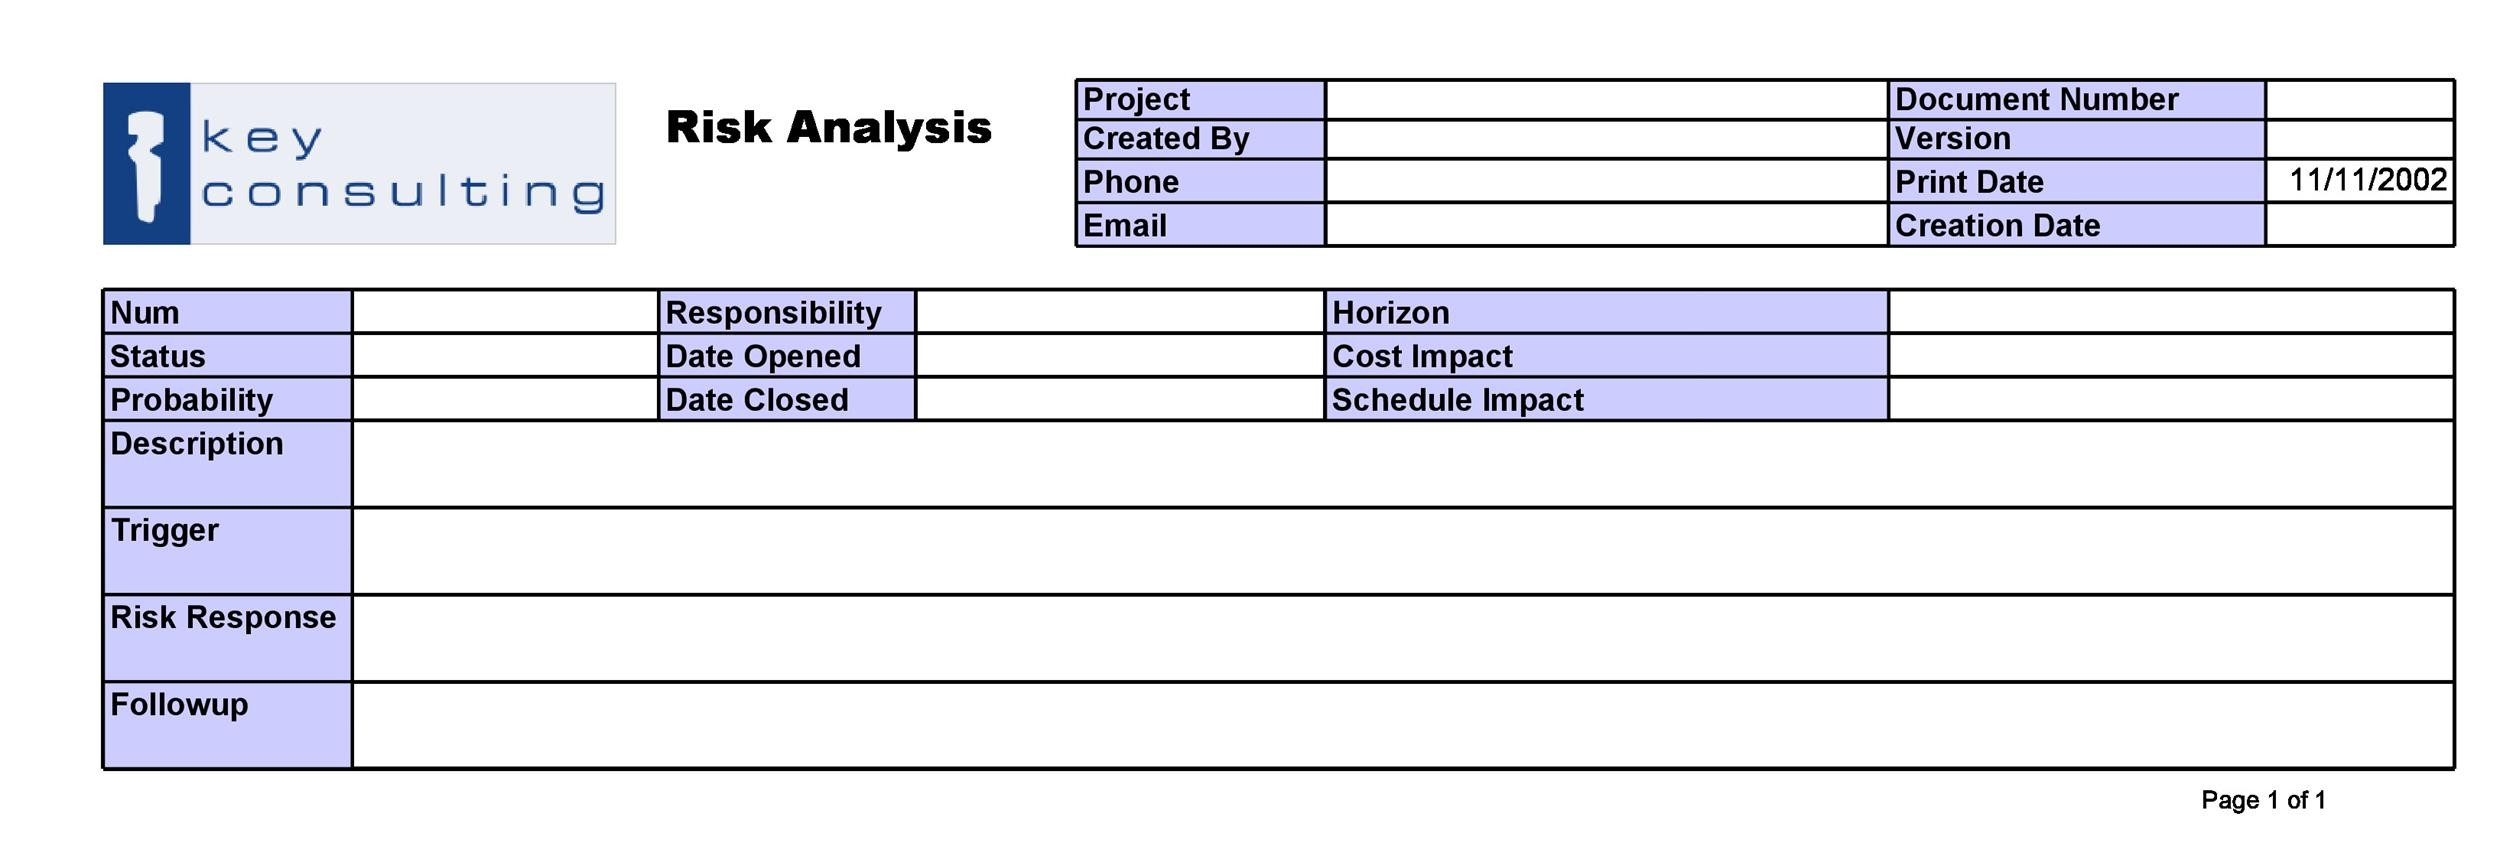 Free Risk Analysis Template 09